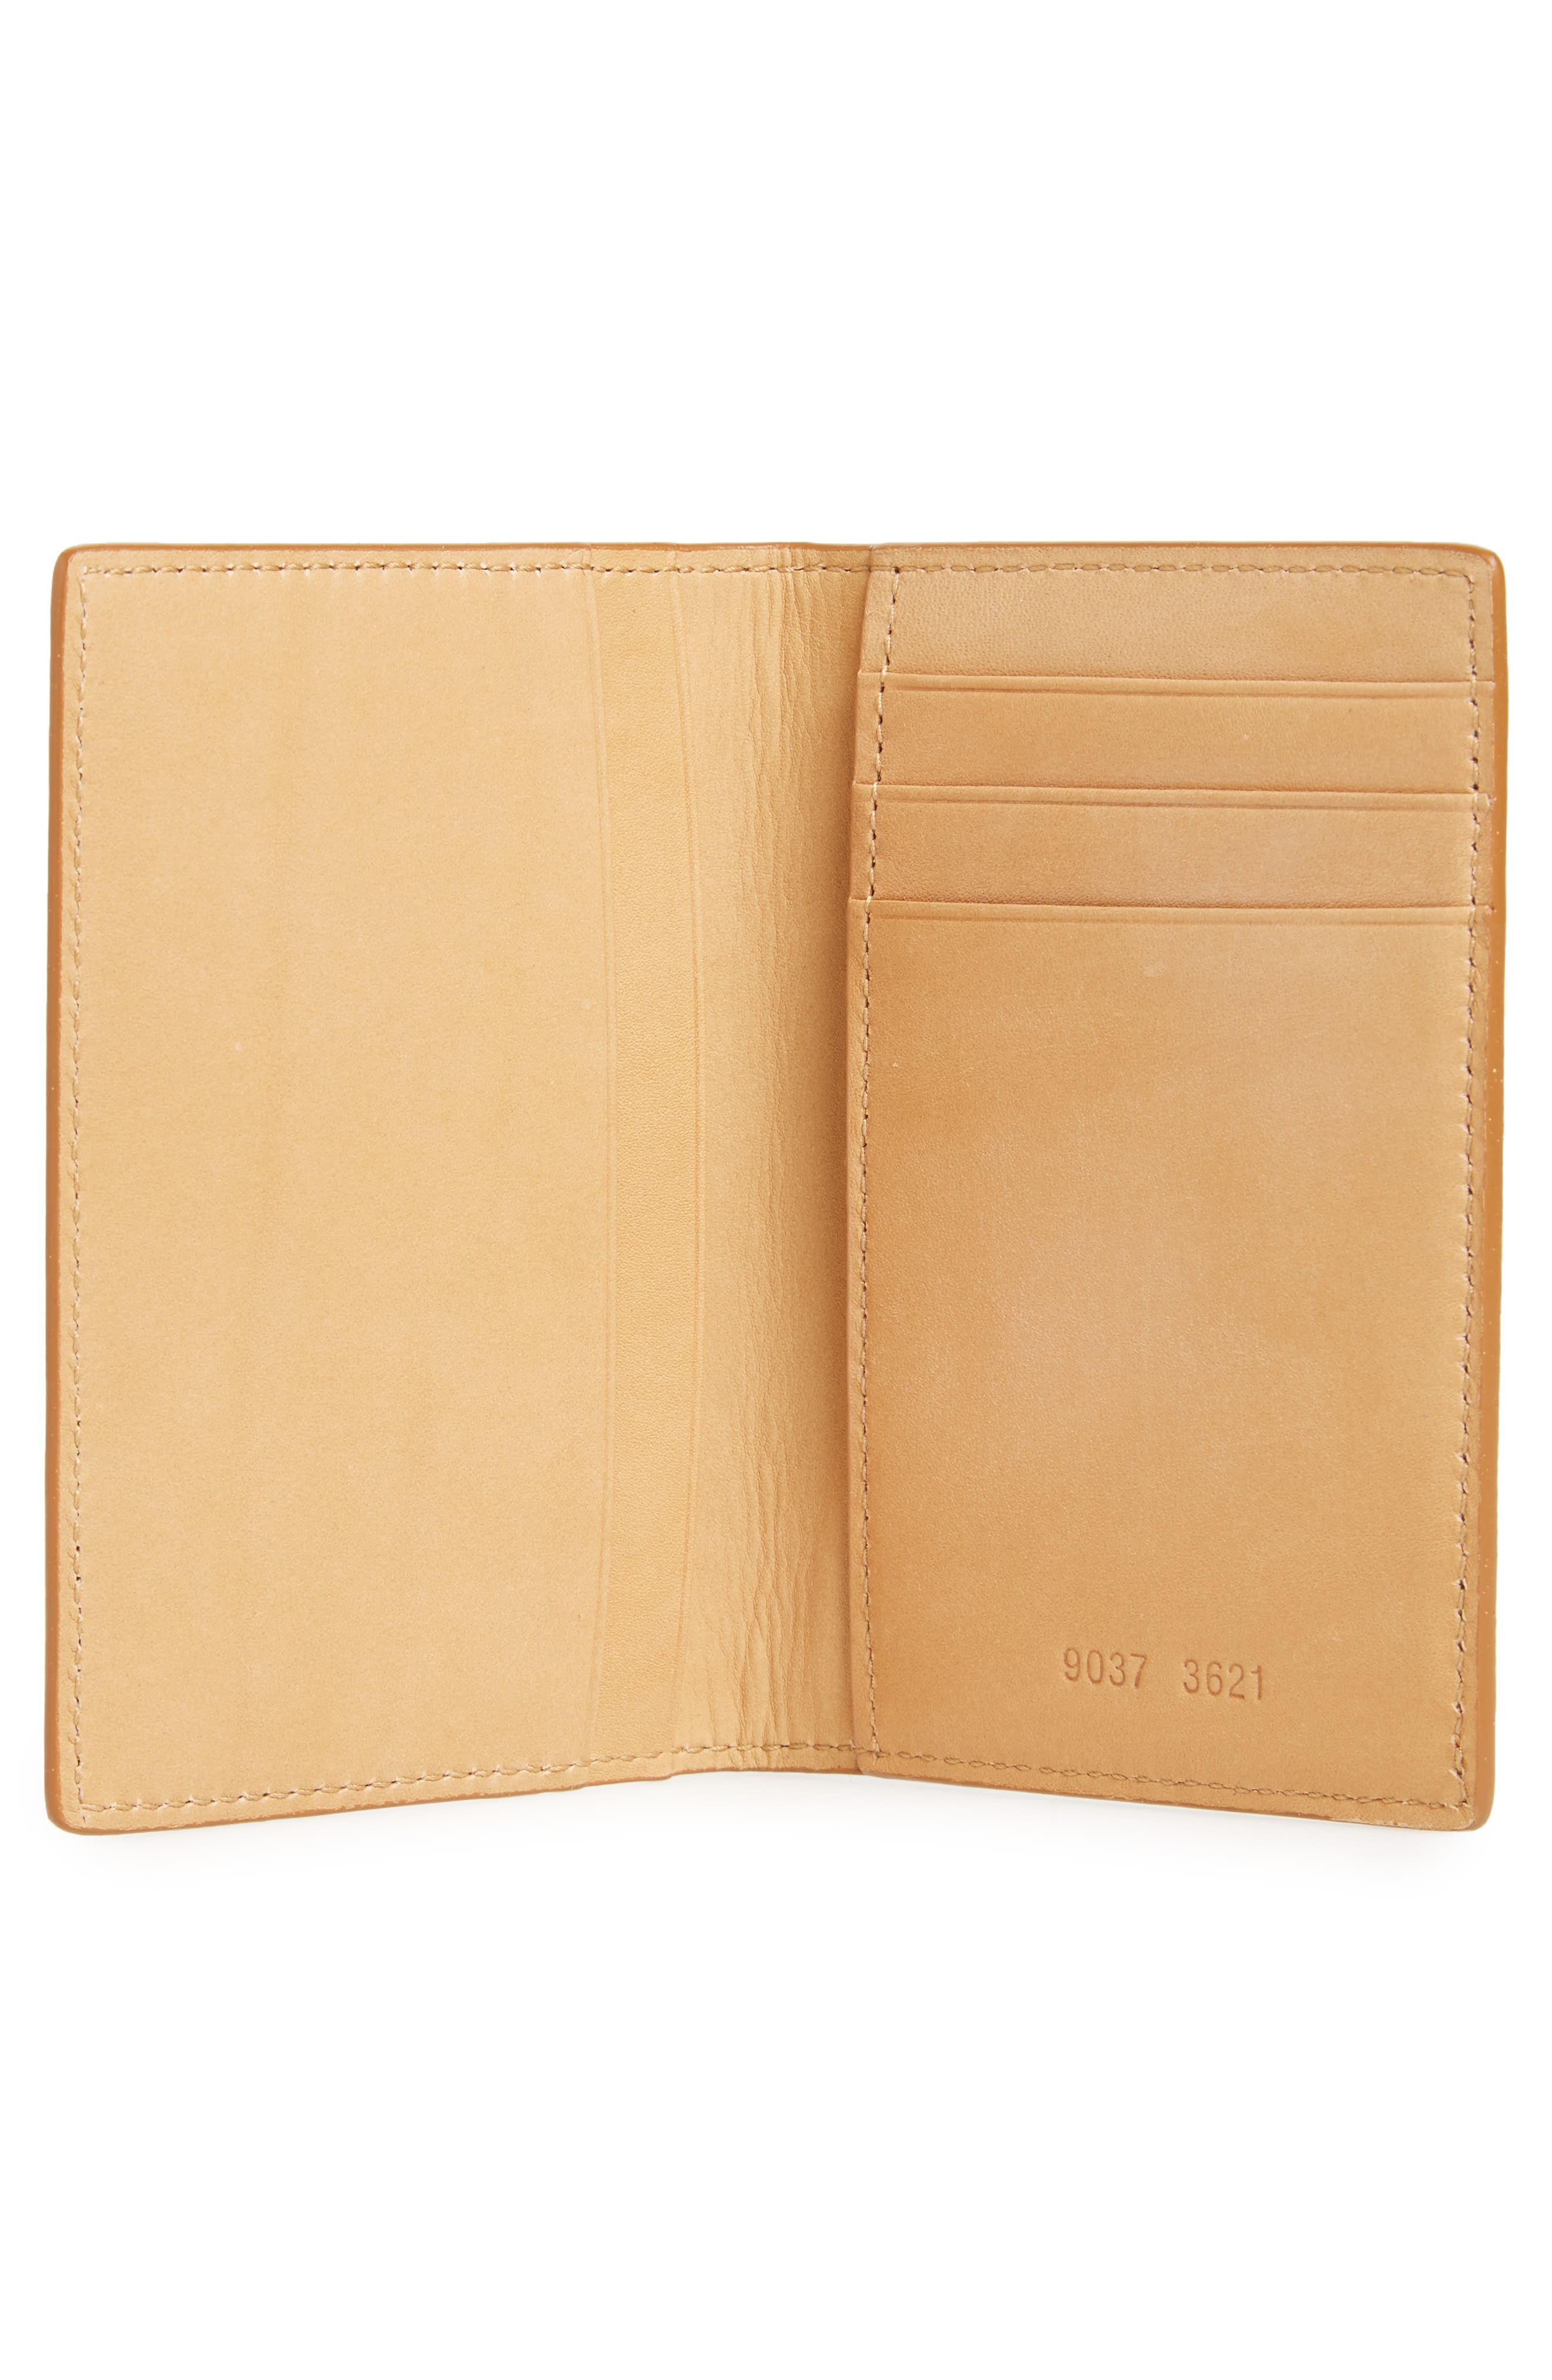 Saffiano Leather Folio Wallet,                             Alternate thumbnail 2, color,                             Brown